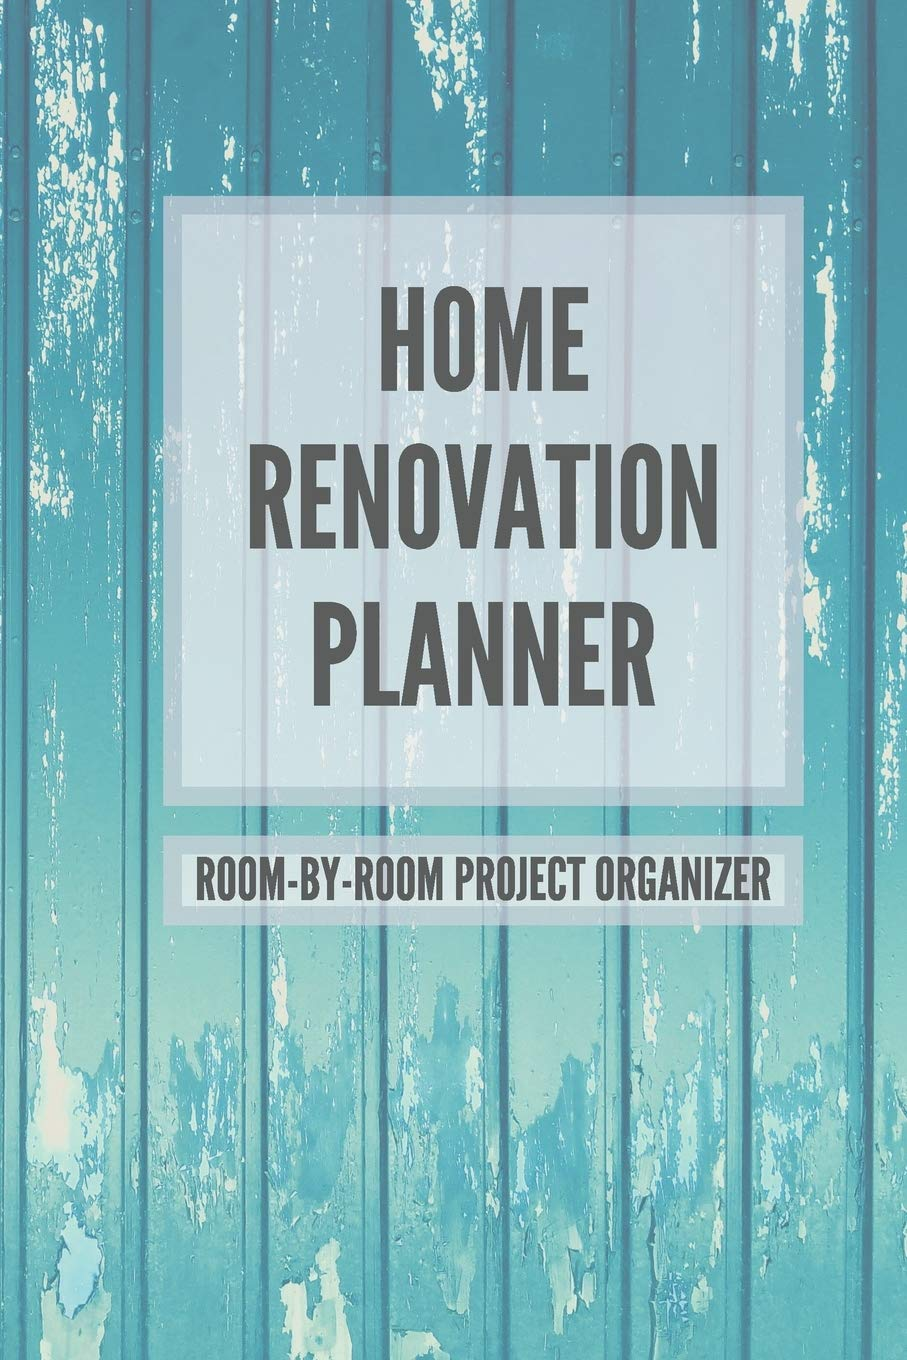 Amazon Com Home Renovation Planner Log Book Sketchpad Checklist And Project Organizer For Remodeling And Home Improvement Progress By Room 6 X 9 In 9781708702229 Planners Pfm Publishing Books